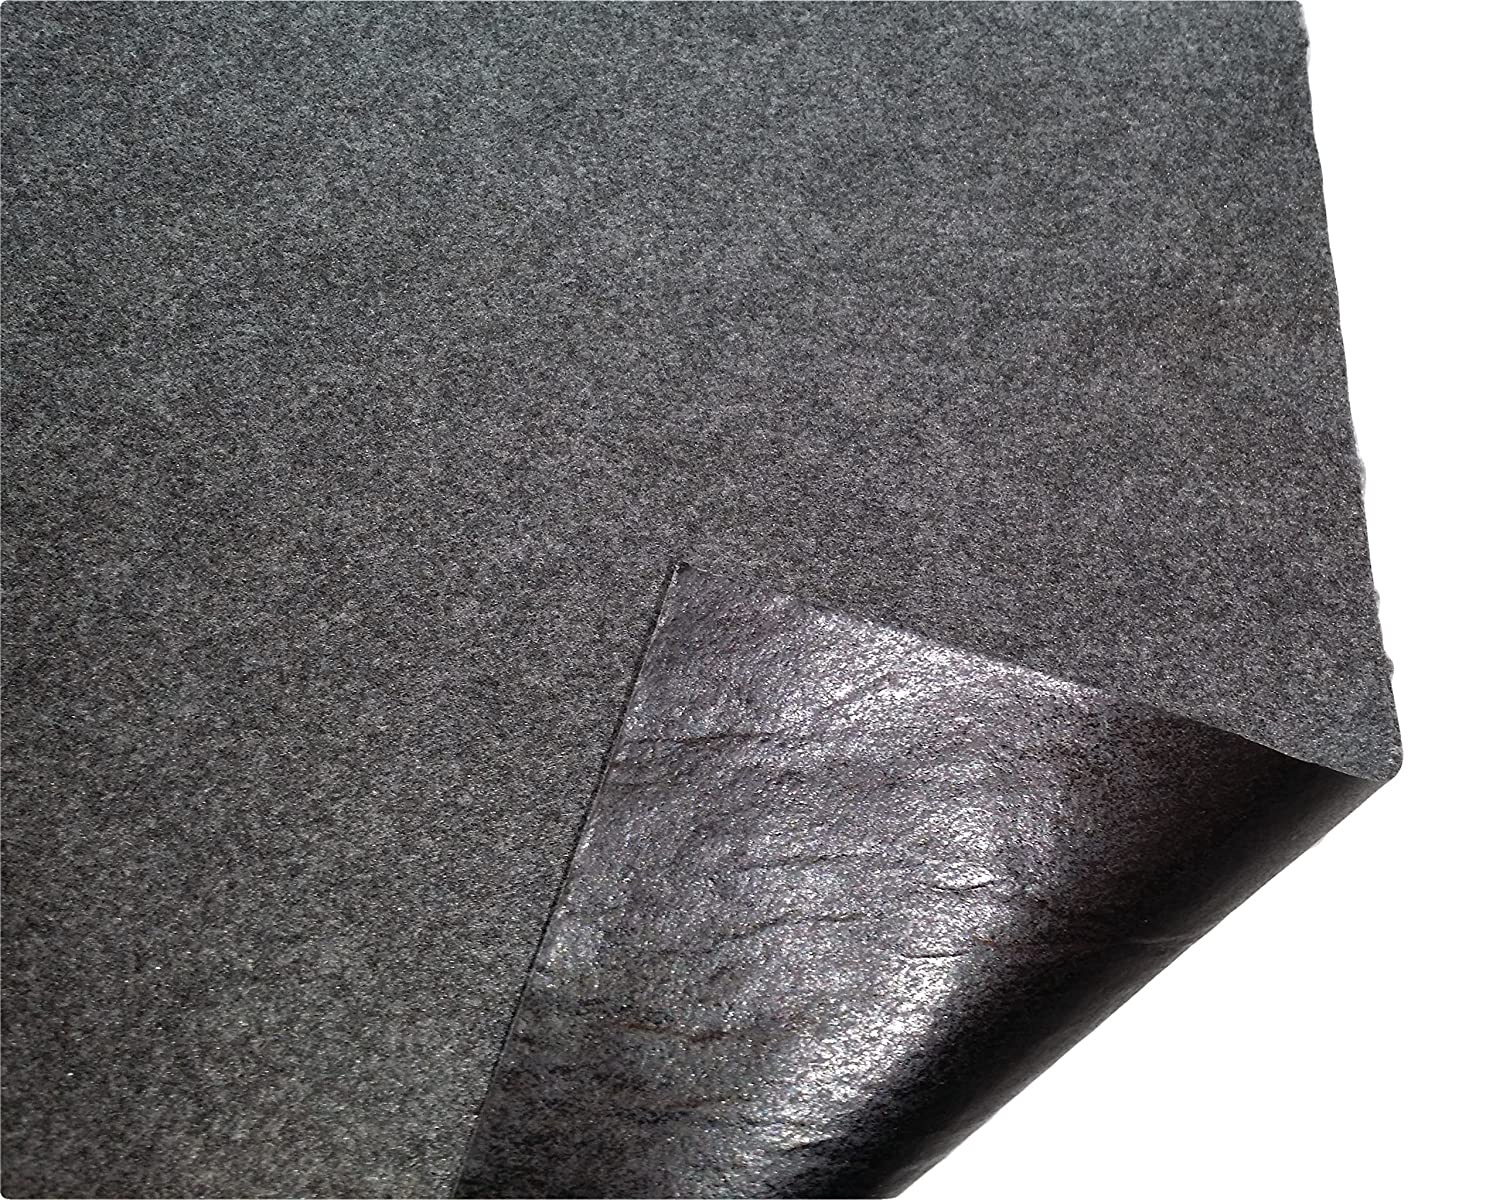 CleanUp Stuff Under Sink Mat Absorbent Cut to Fit Cabinet Liner Power Clean Inc C1383USMP